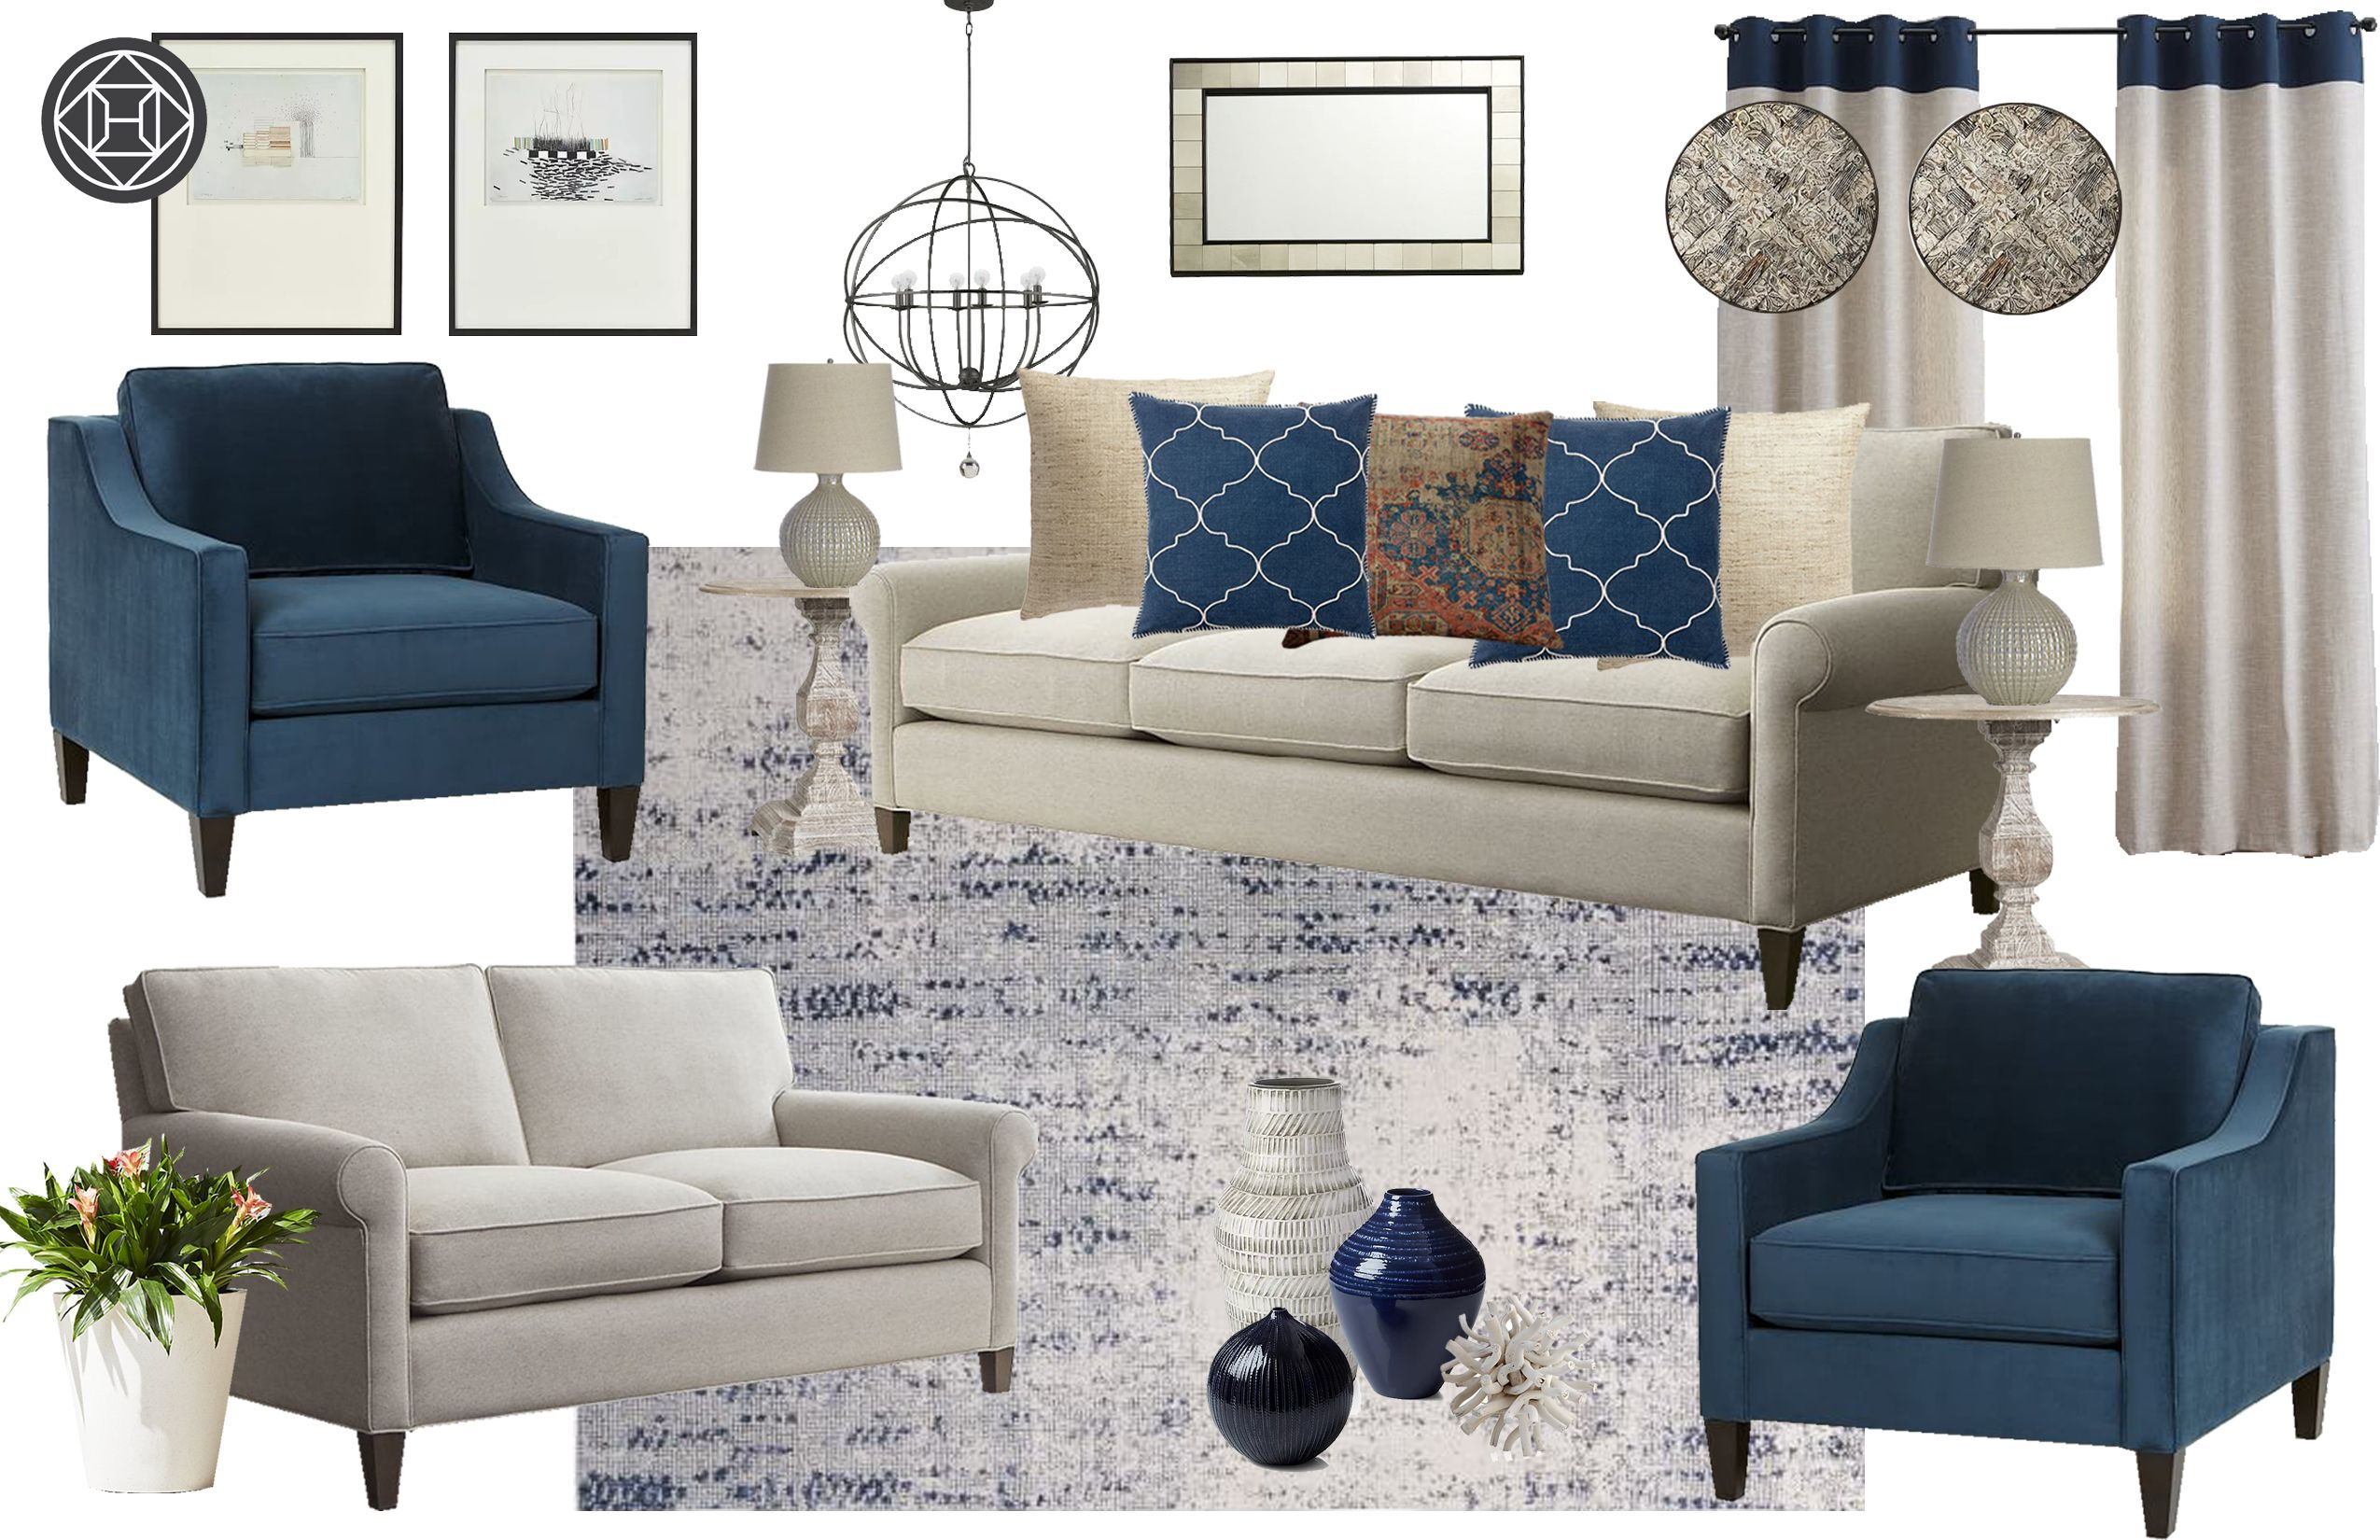 Design Your Own Living Room Layout Free